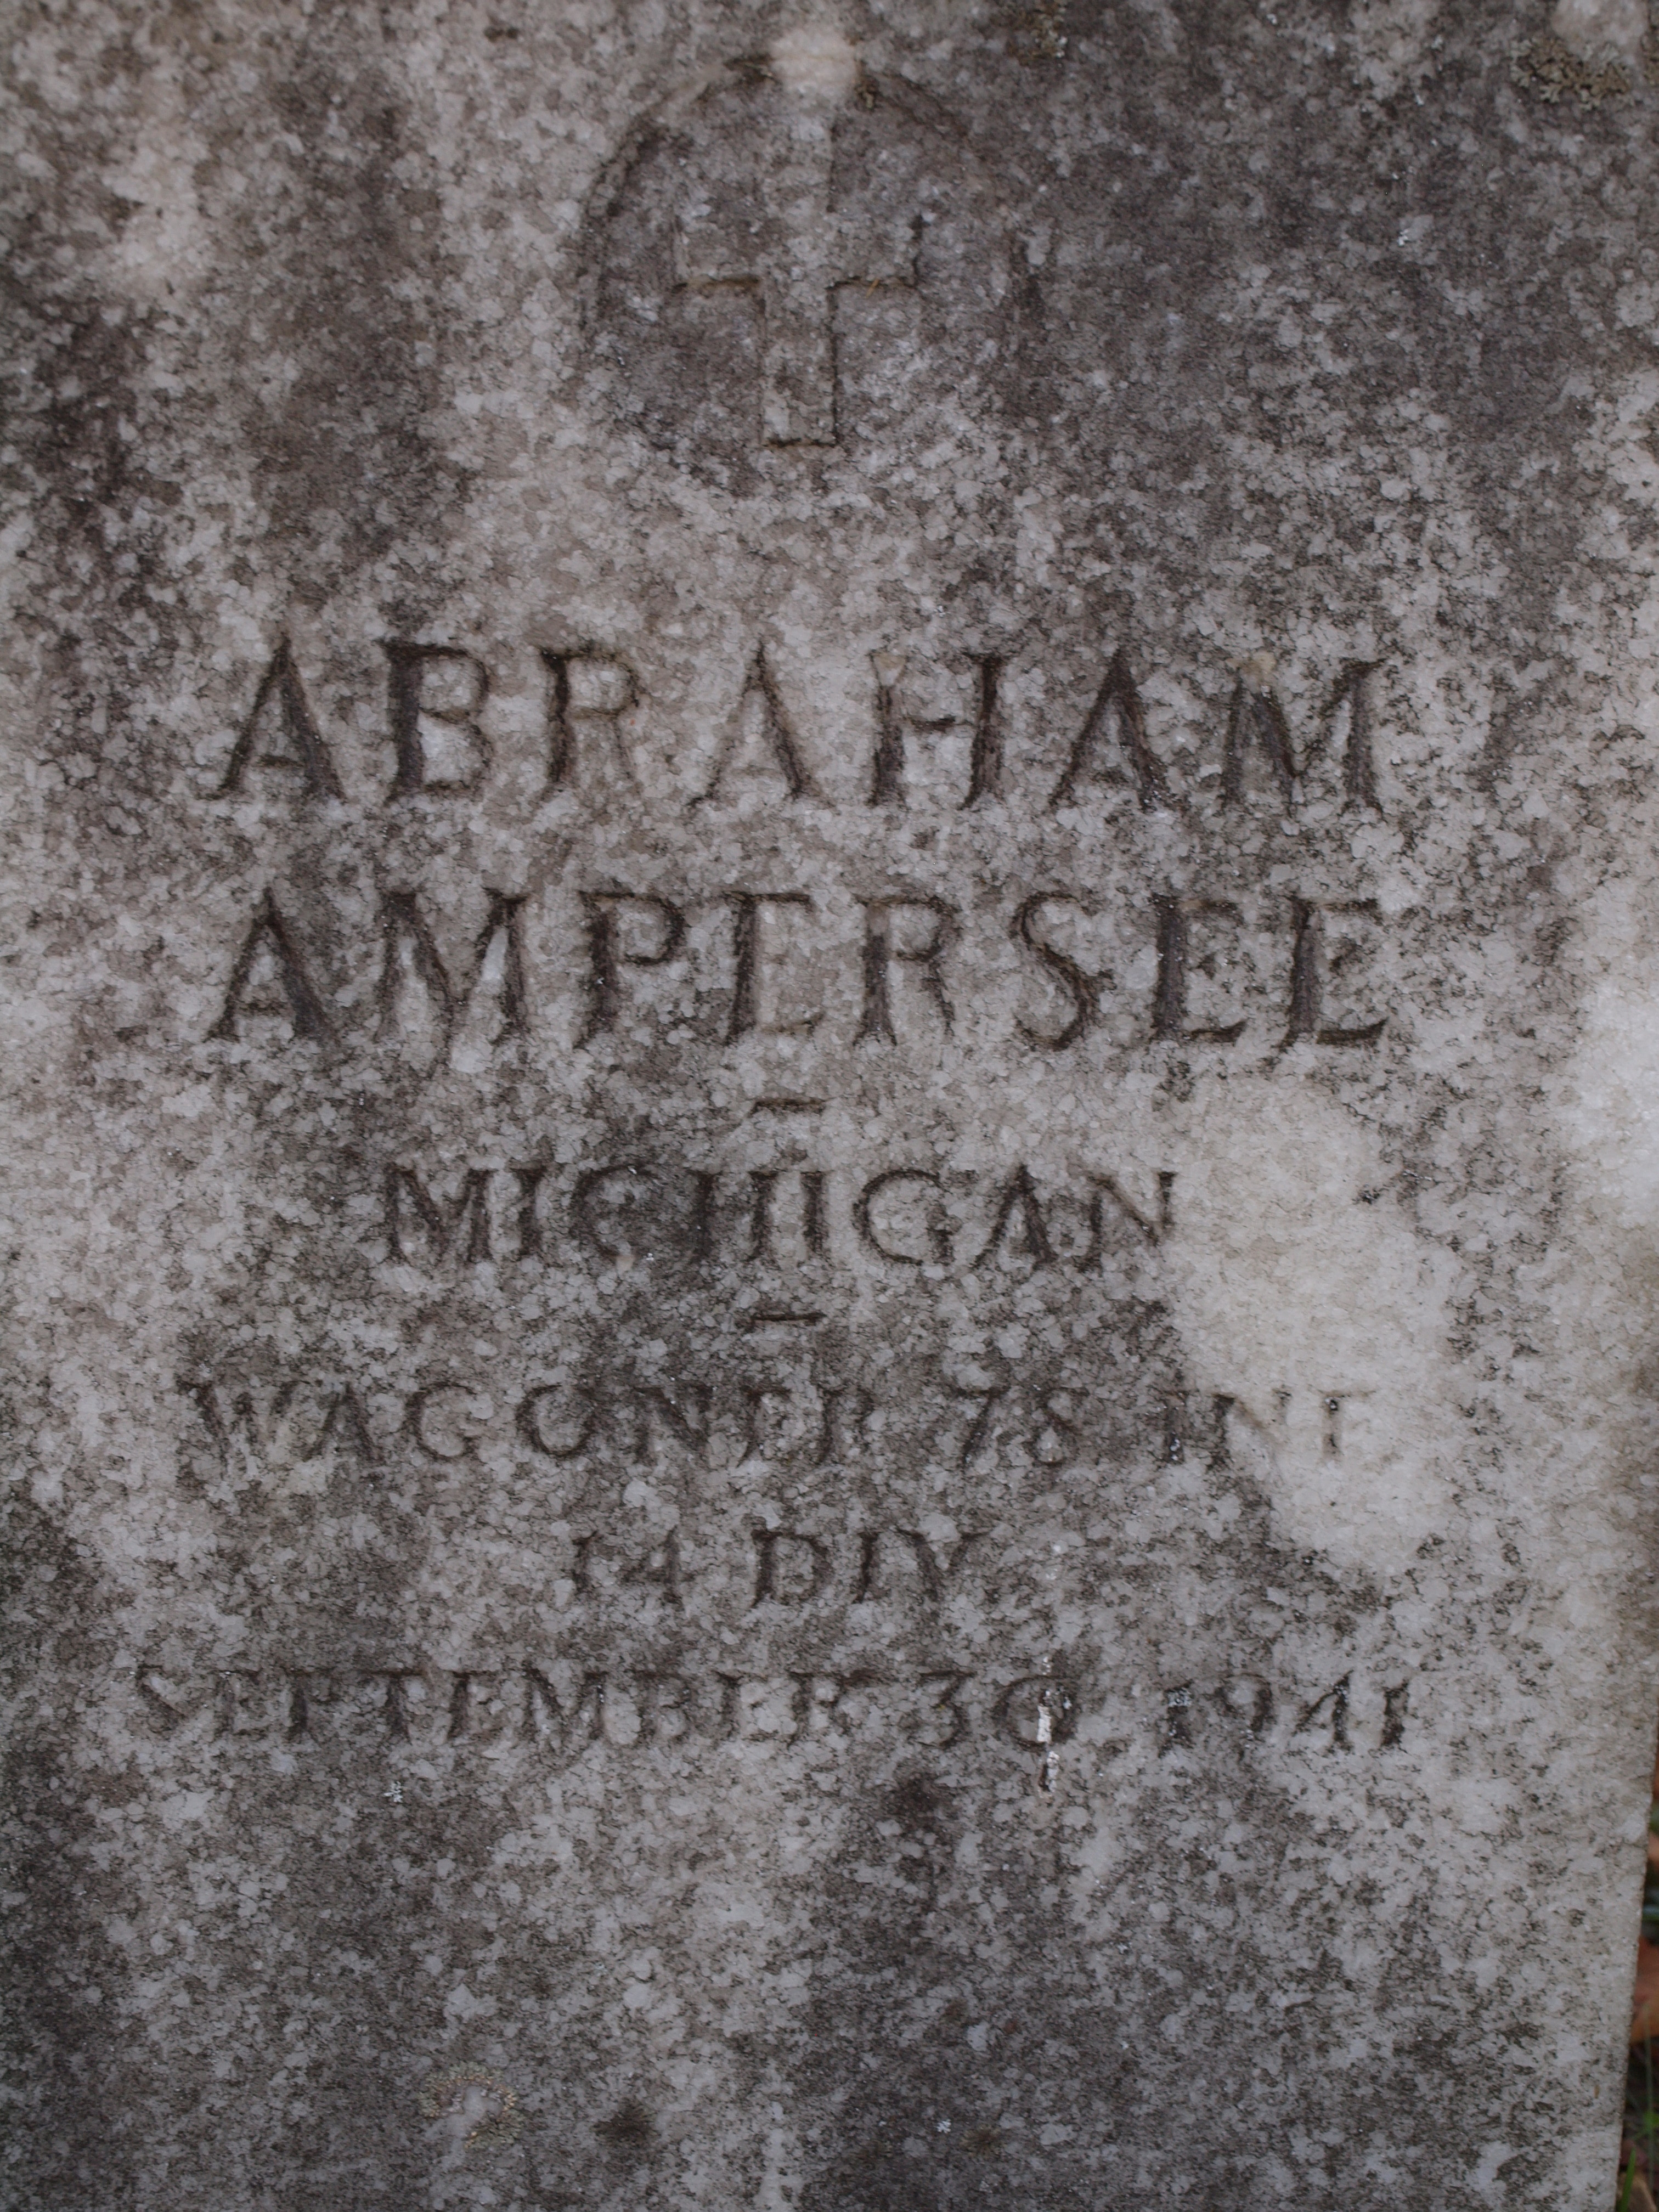 Abraham Ampersee